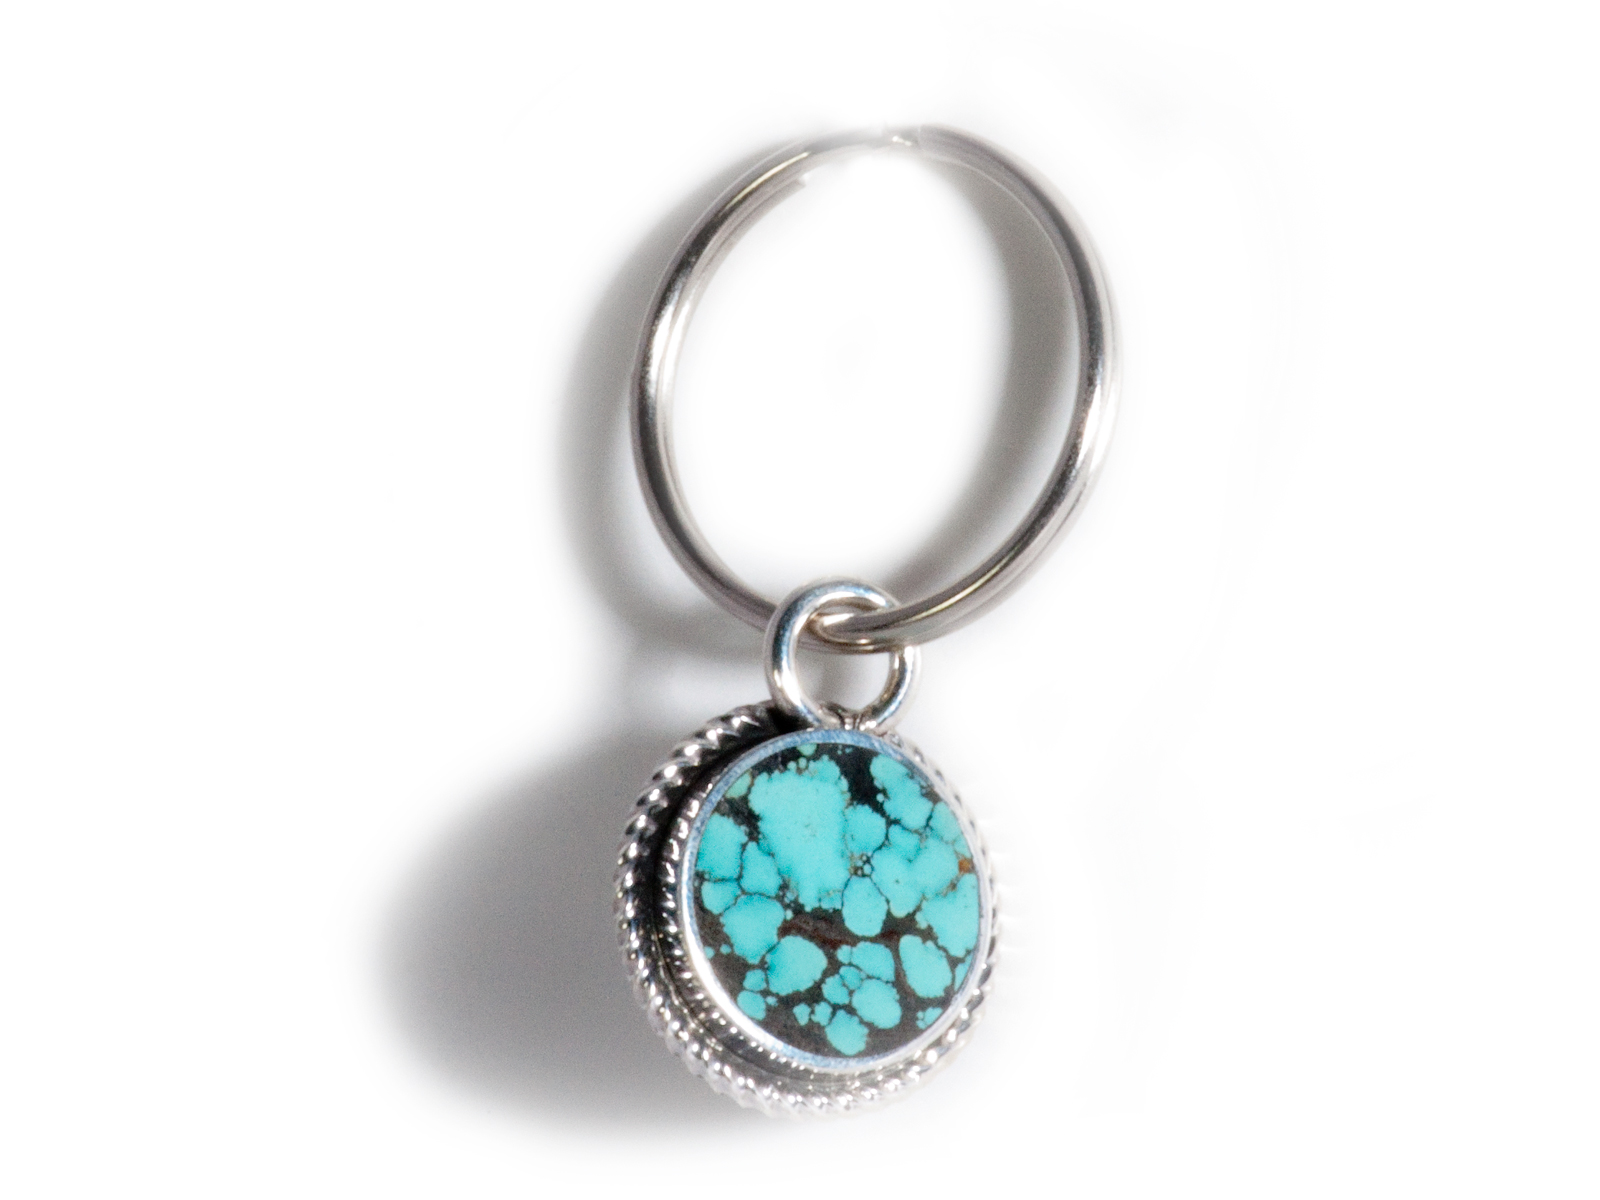 Matrixed Turquoise Key Chain